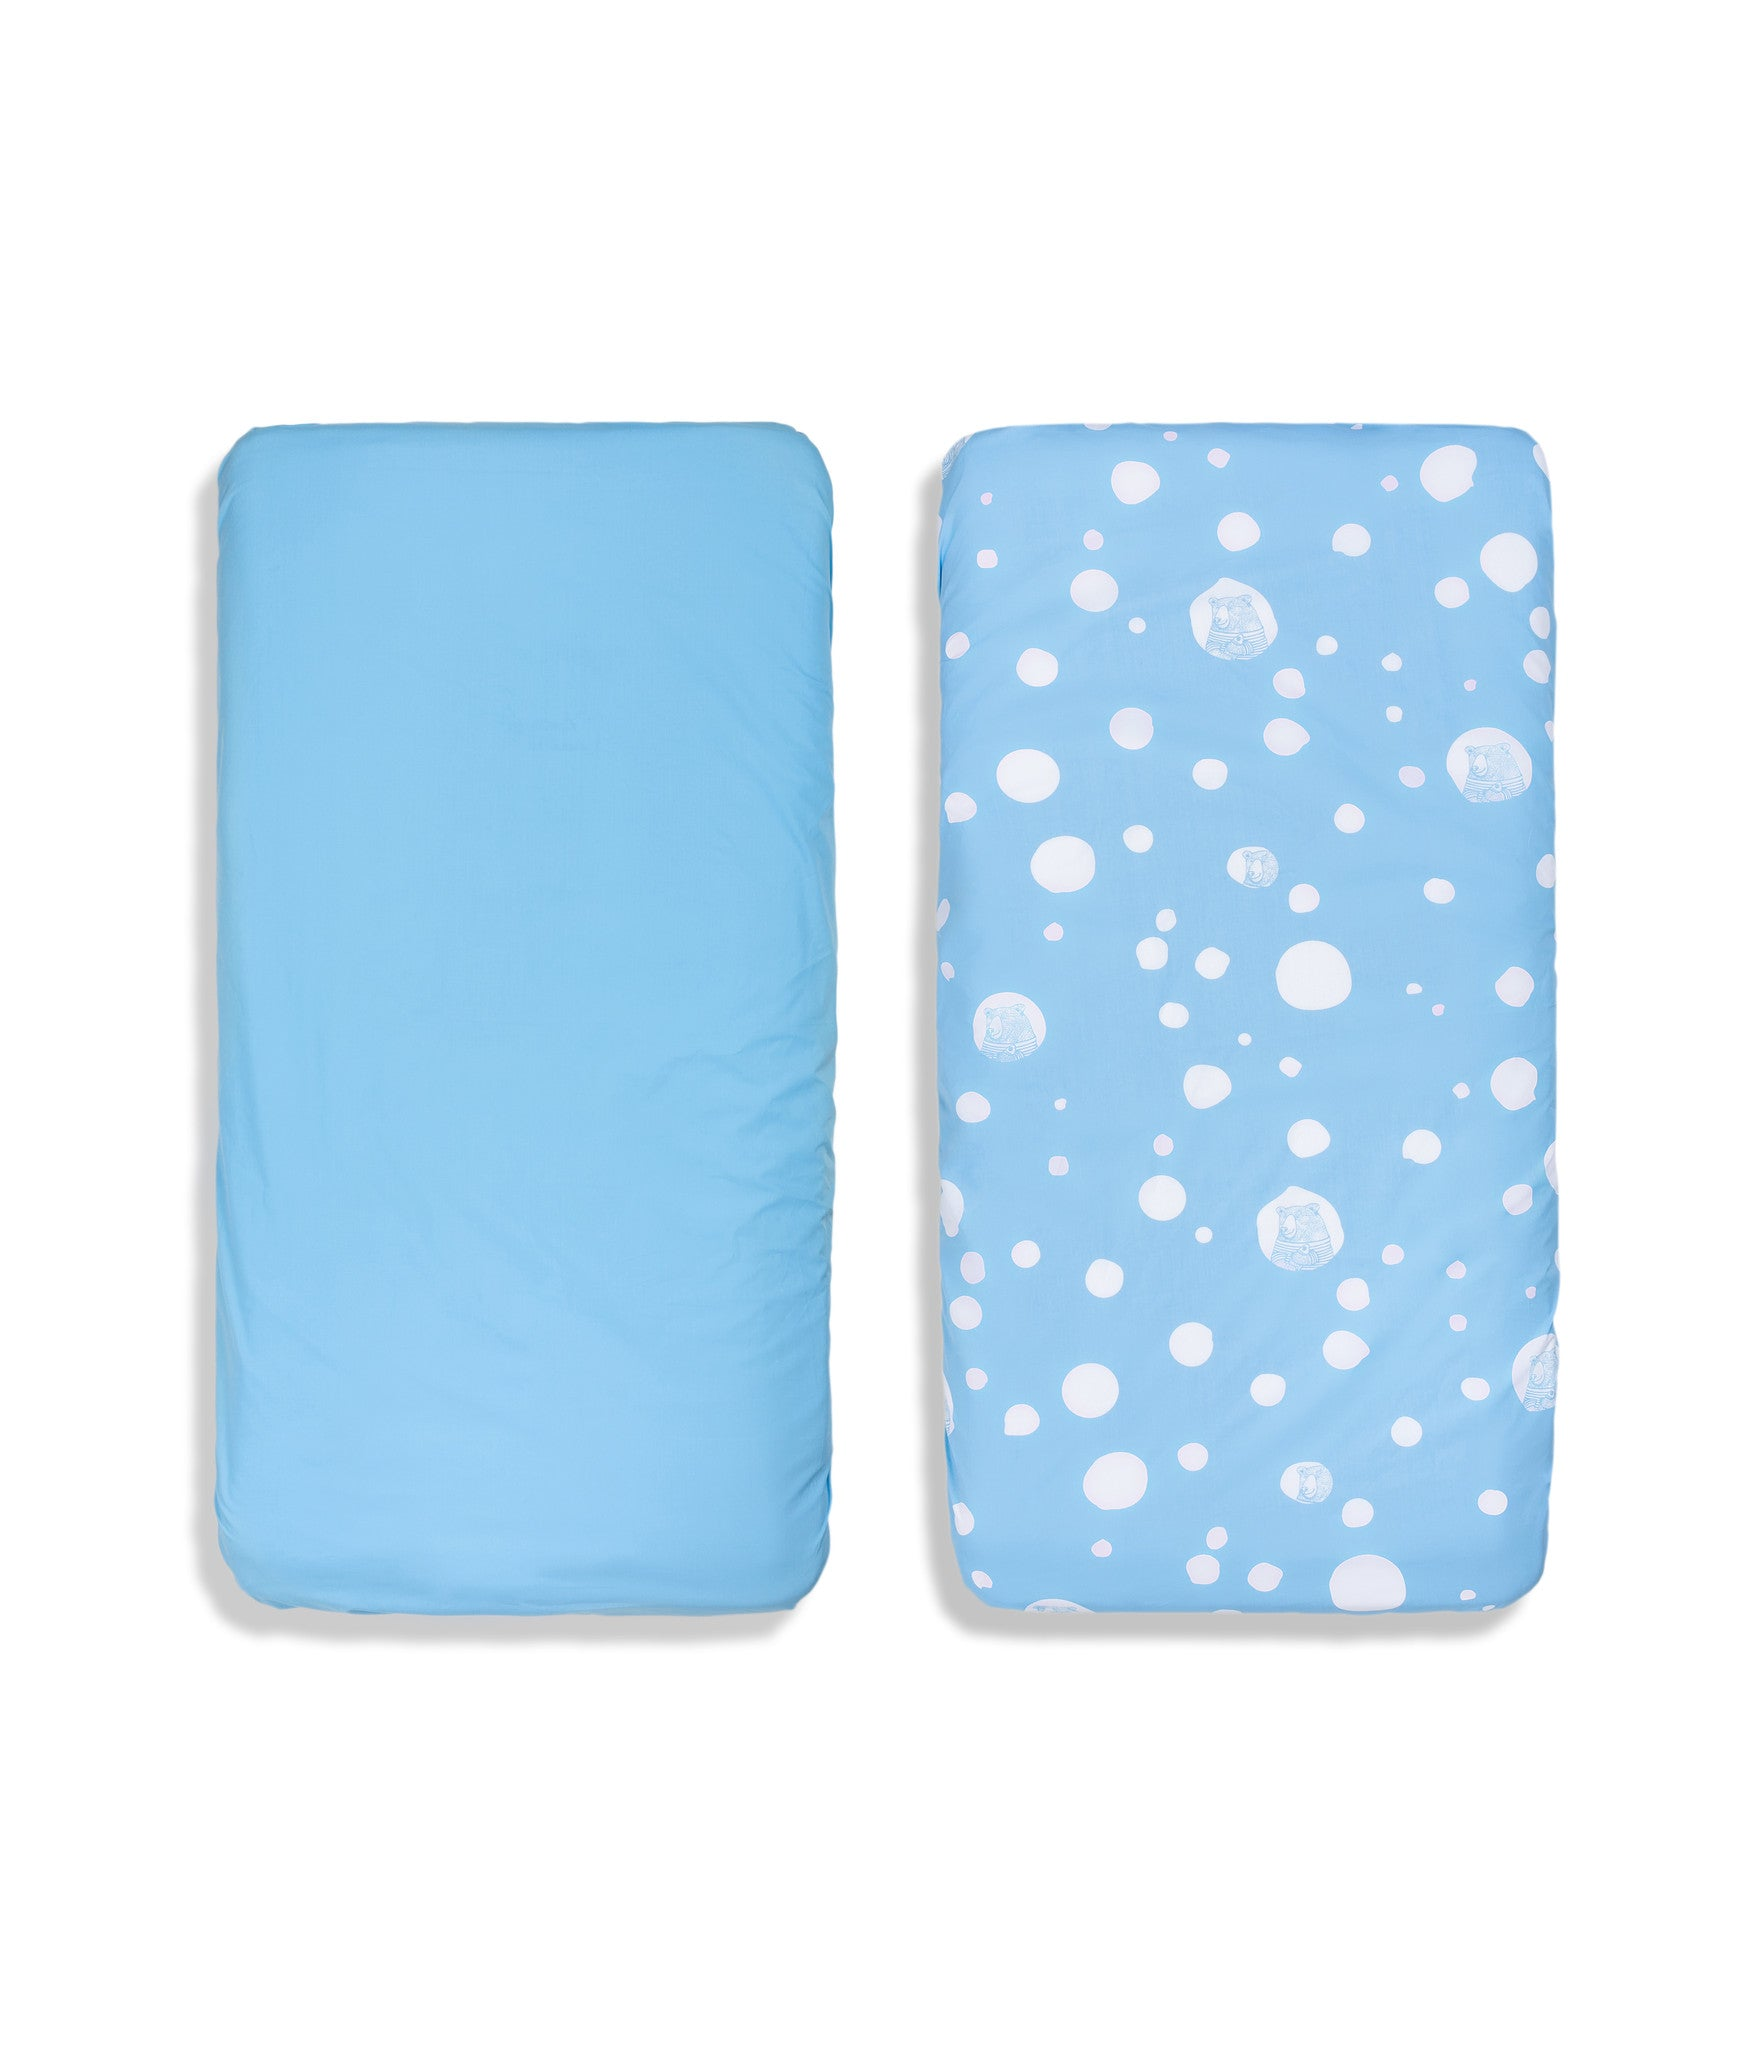 Organic cotton blue cot bed fitted sheets. Baby bedding. Blue colour. Dotted pattern bed linen. Main character bear Moony.